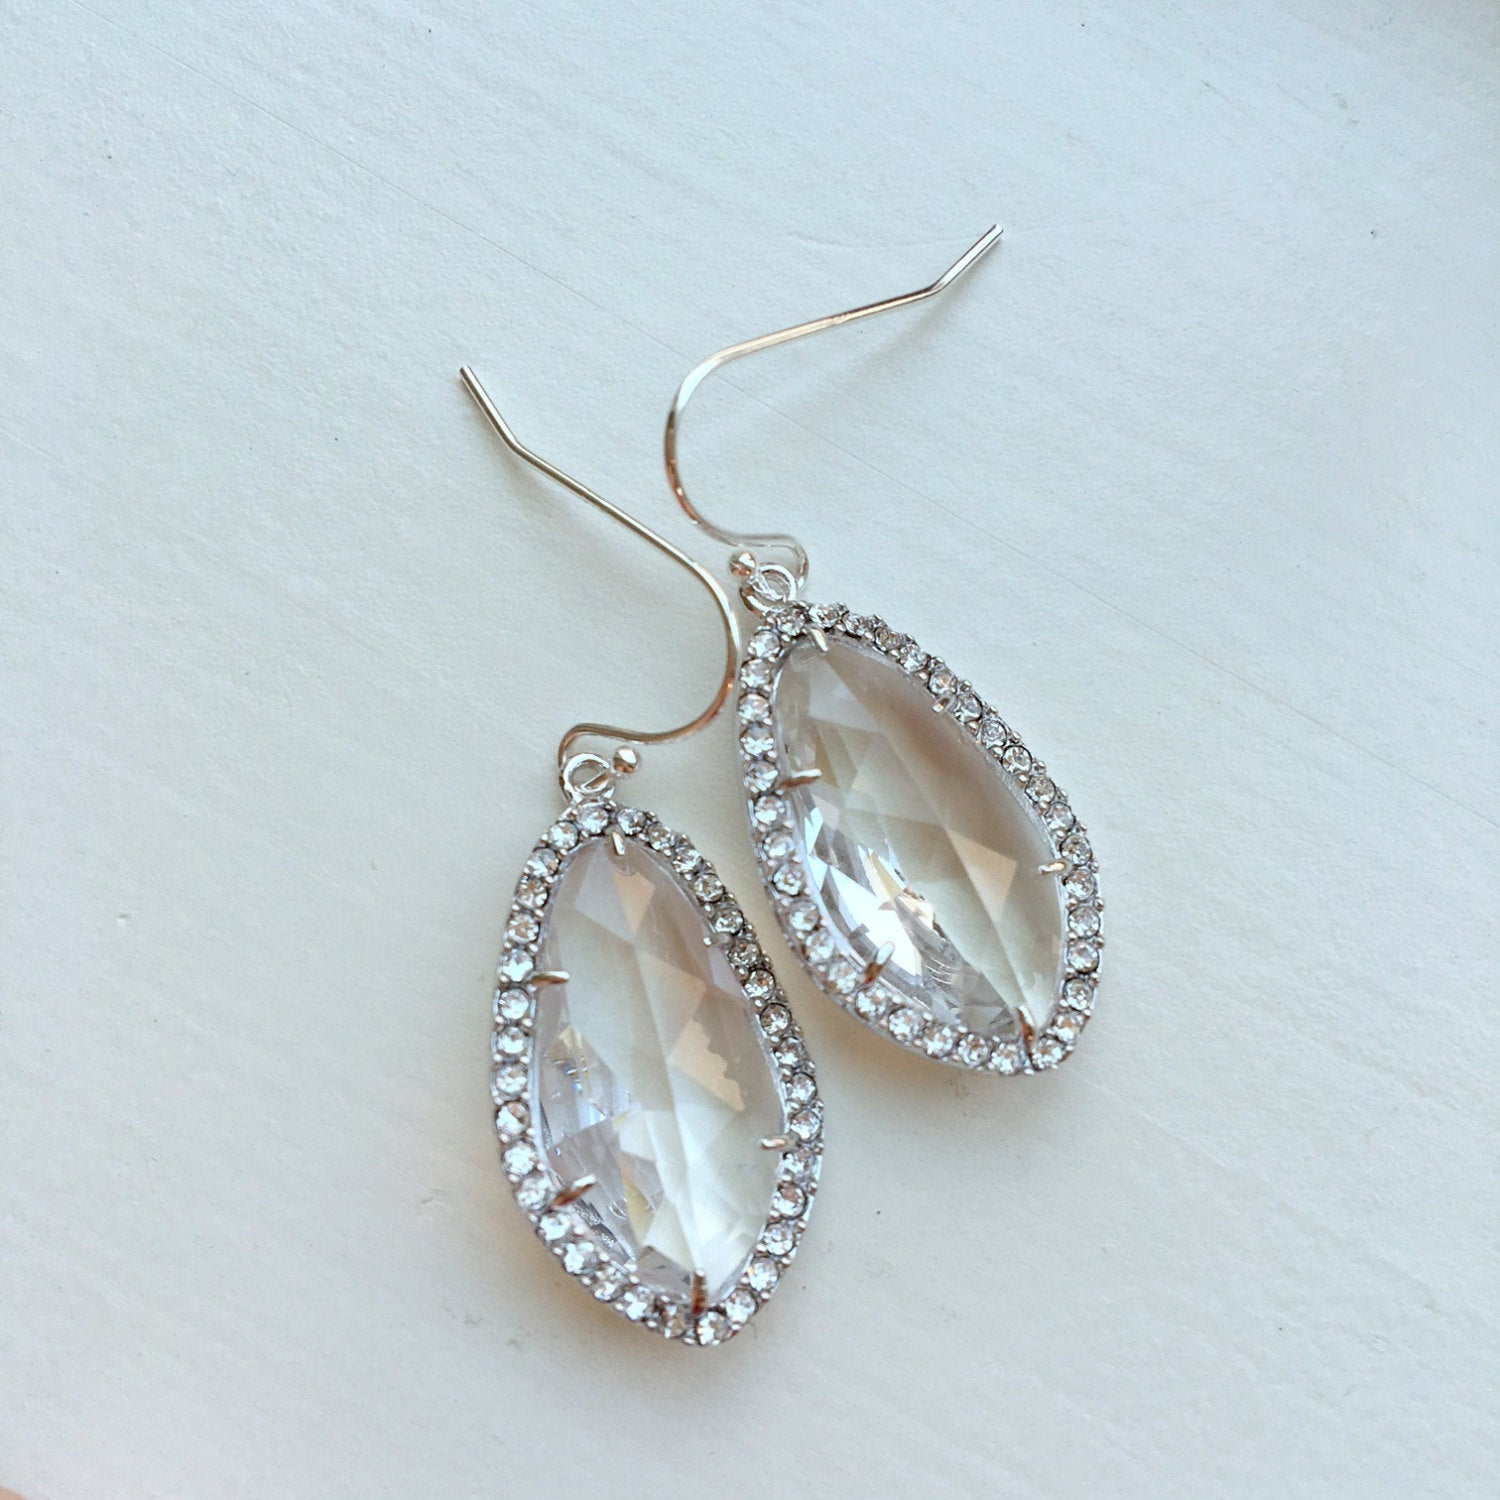 Wedding Jewelry Large Silver Crystal Clear Earrings Setting Crystal Jewelry - Bridesmaid Jewelry - Bridal Earrings